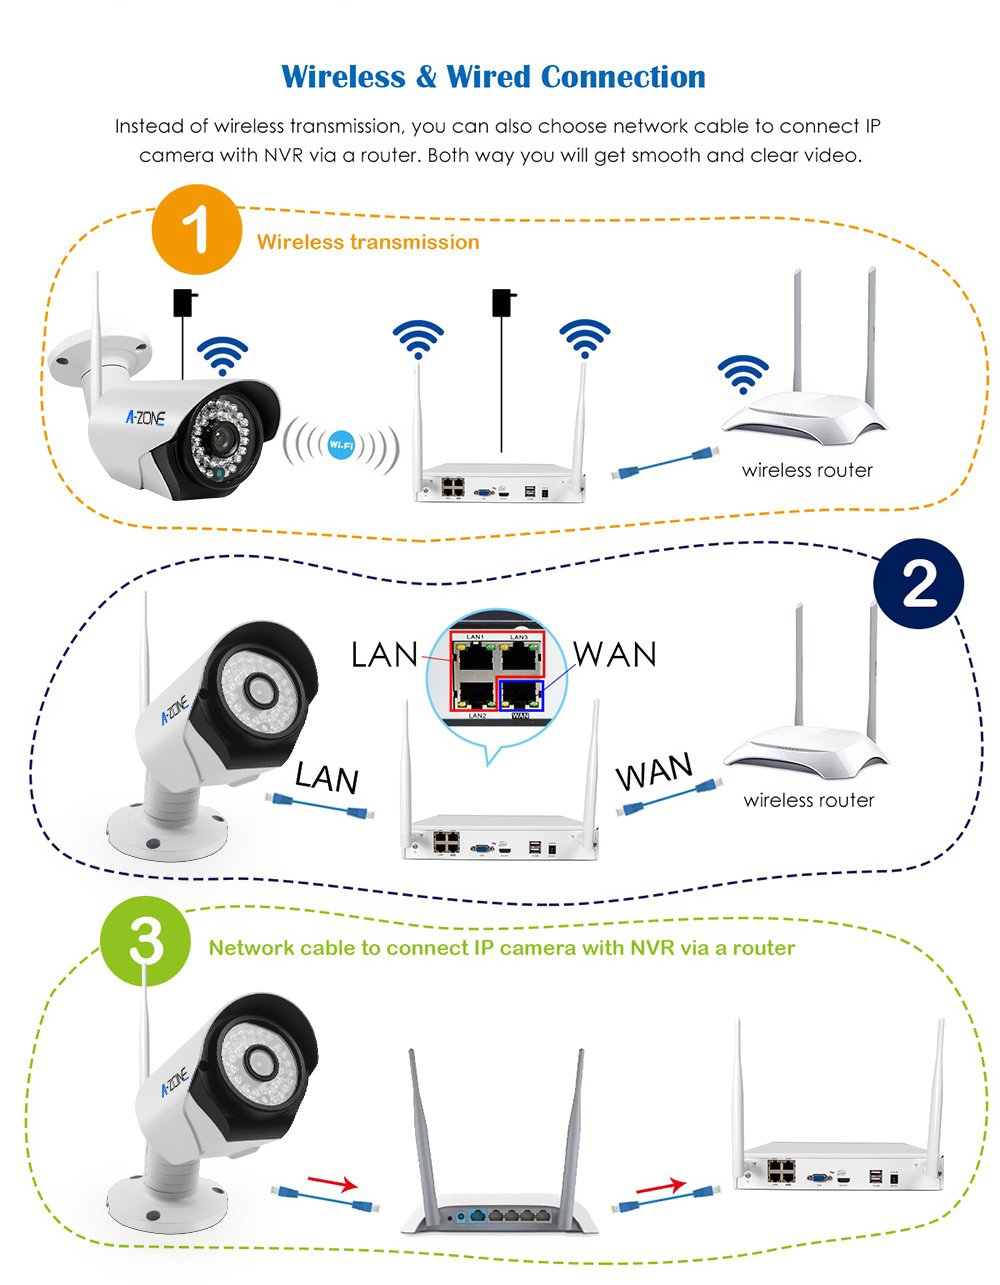 a zone ch home wireless cctv camera systems p nvr recorder x a zone 4ch home wireless cctv camera systems 960p nvr recorder 4x ip 720p 1 0mp wireless wifi security camera outdoor indoor qr code scan easy diy